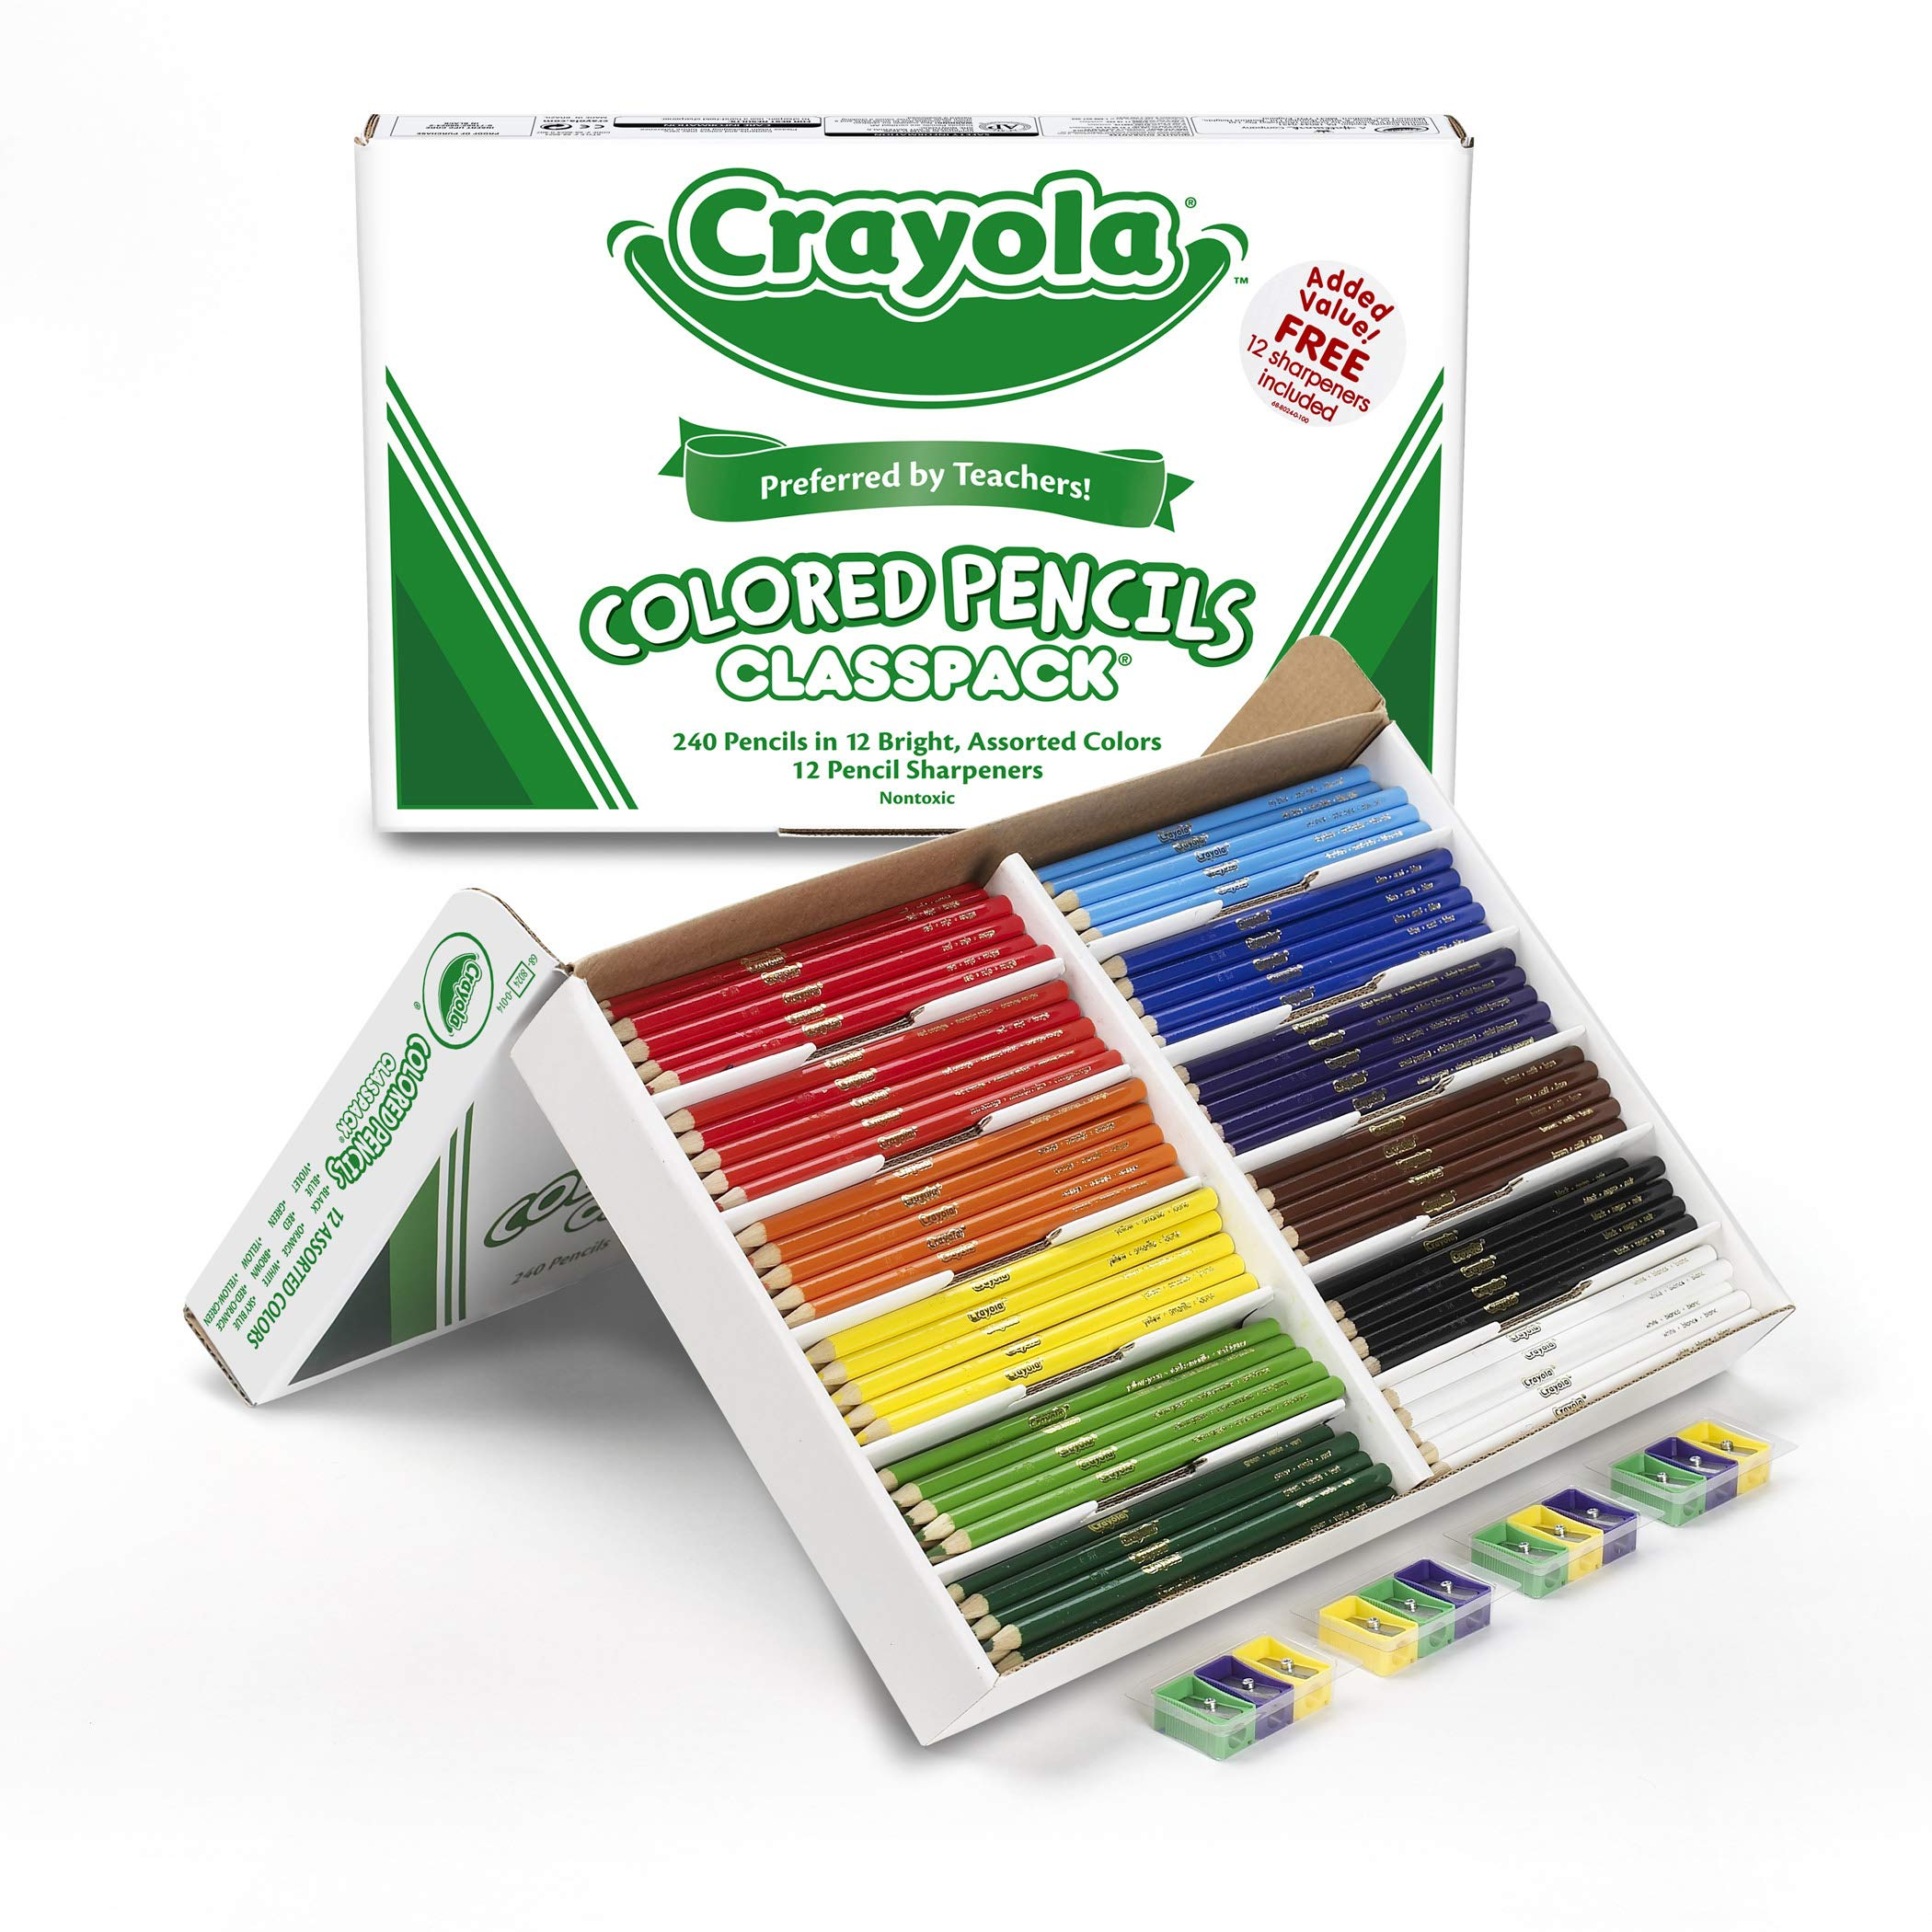 Crayola Colored Pencils, Bulk Classpack, Classroom Supplies, 12 Assorted Colors, 240 Count by Crayola